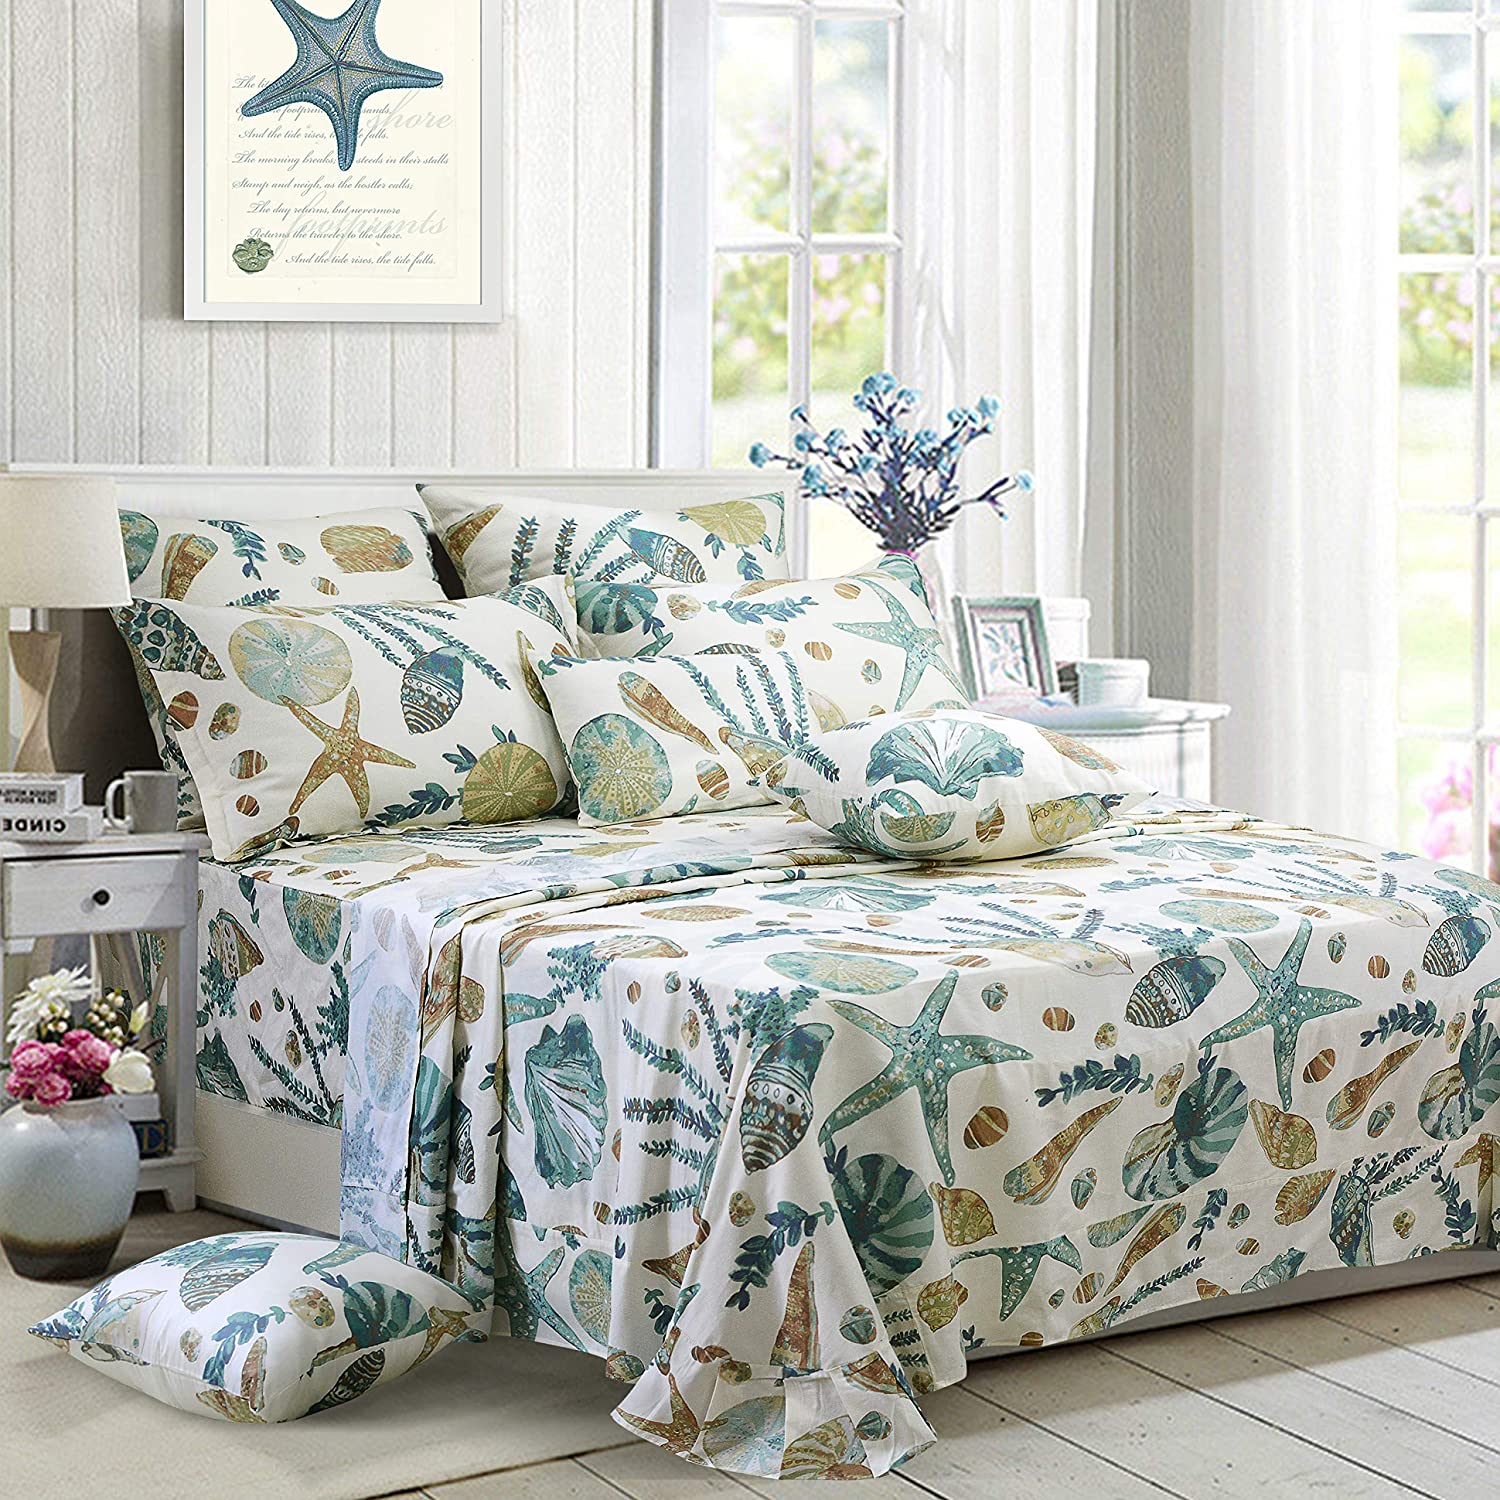 FADFAY Sheet Set Twin XL Beach Themed Bedding Sets 100% Cotton Super Soft Hypoallergenic Coastal Bedding White Teal Nautical Bedding with Deep Pocket Fitted Sheet 4-Pieces Twin Extra Long Size